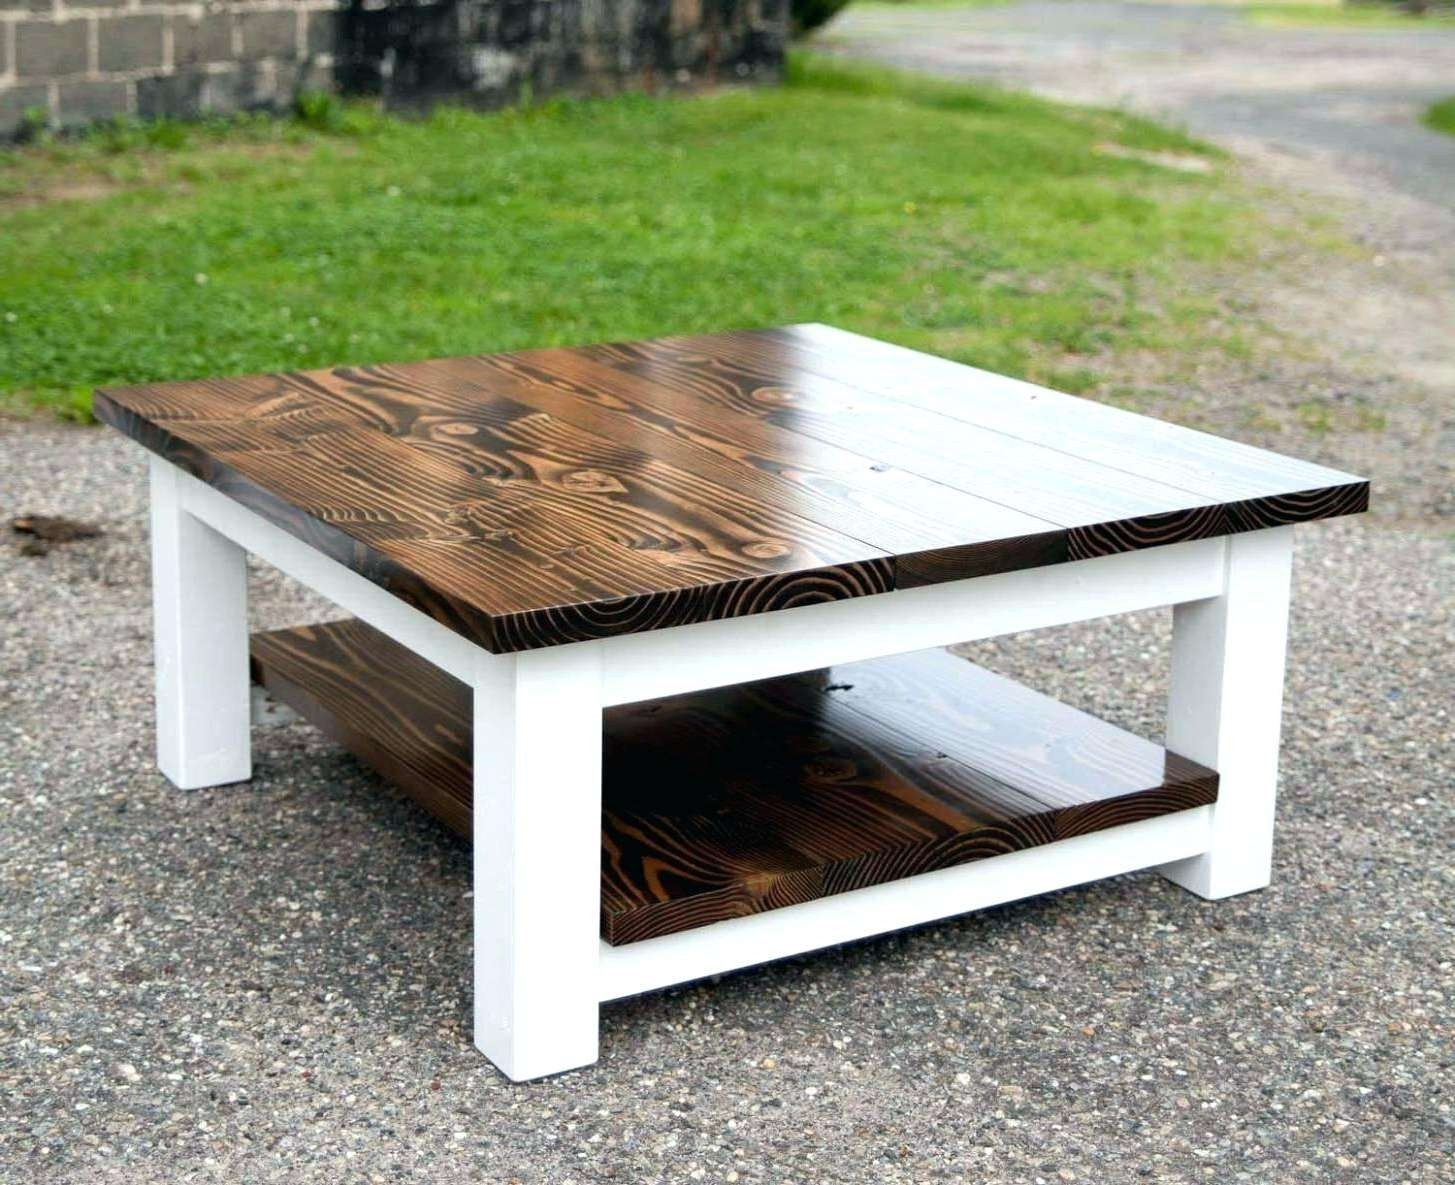 Square White Coffee Table Perfect For Interior Decor Storage Intended For Most Popular Square White Coffee Tables (View 16 of 20)